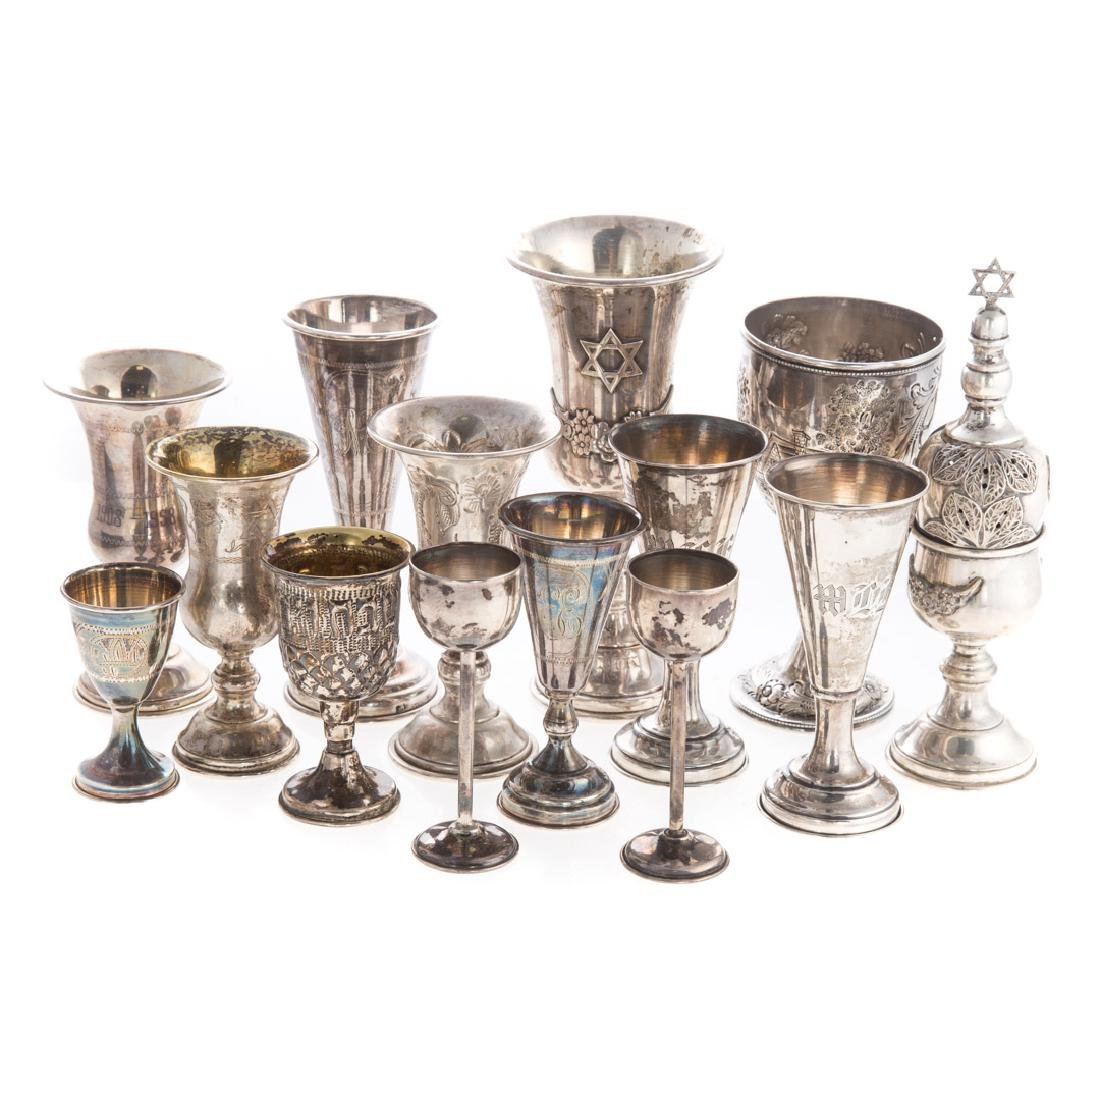 Collection of sterling Judaica items